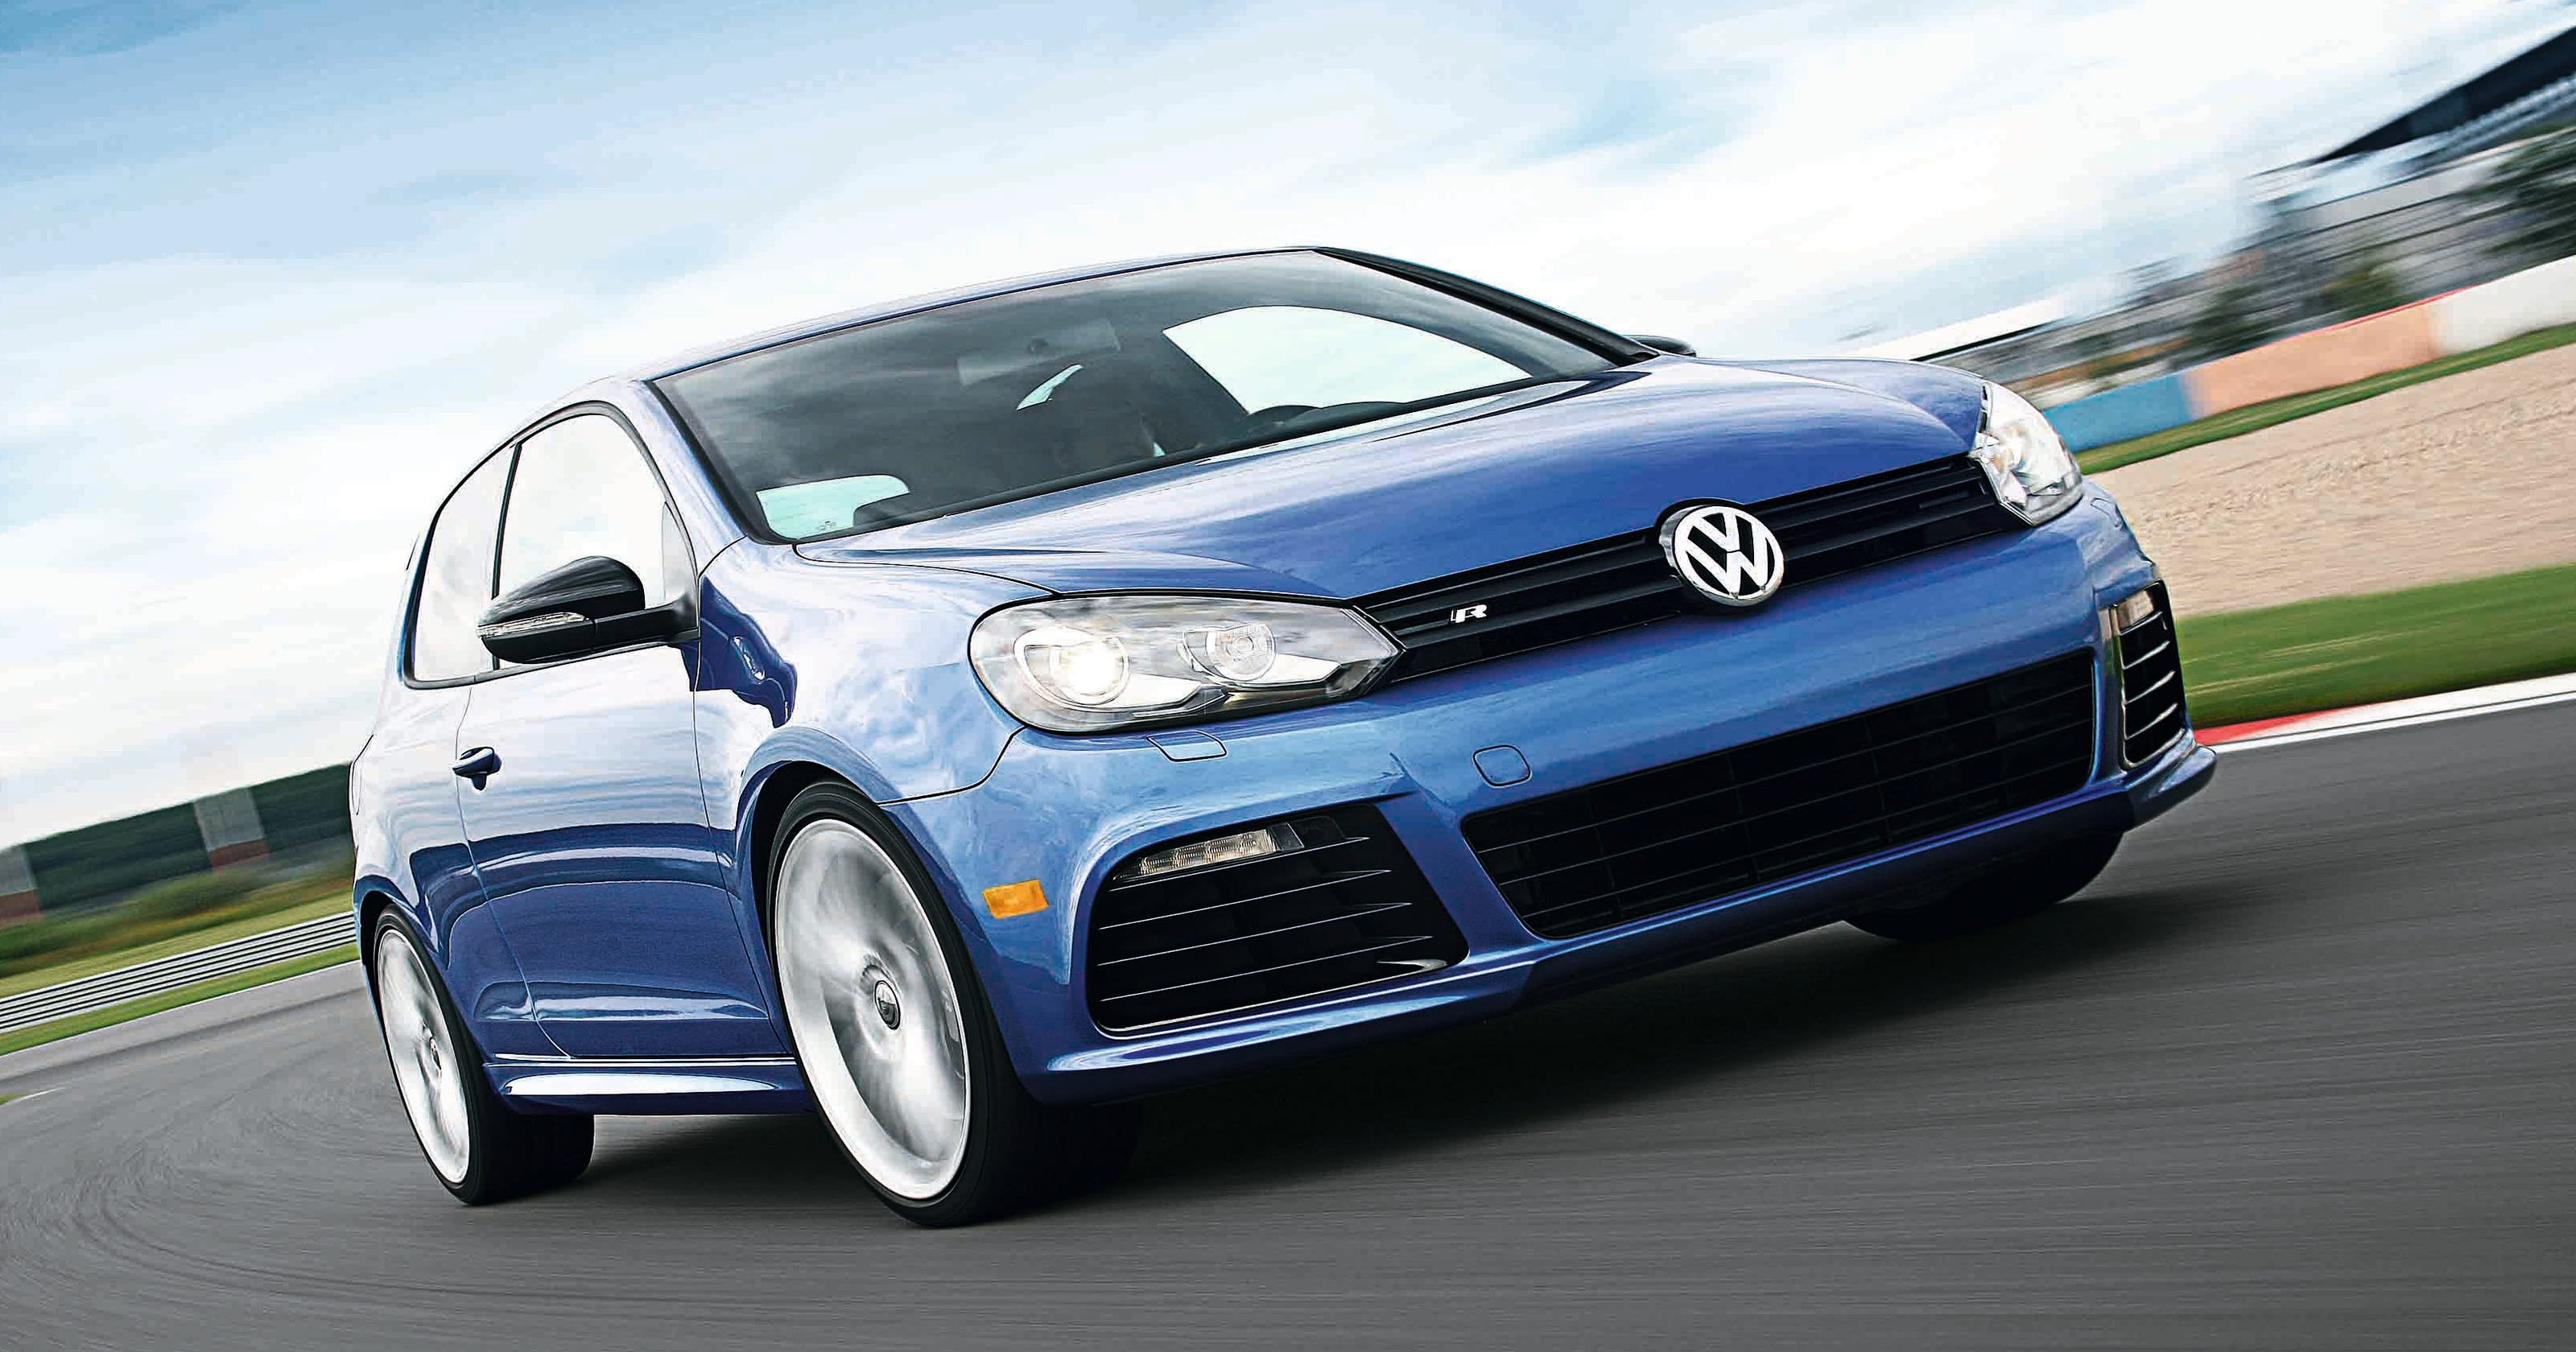 Test Drive: VW Golf R is too much fun